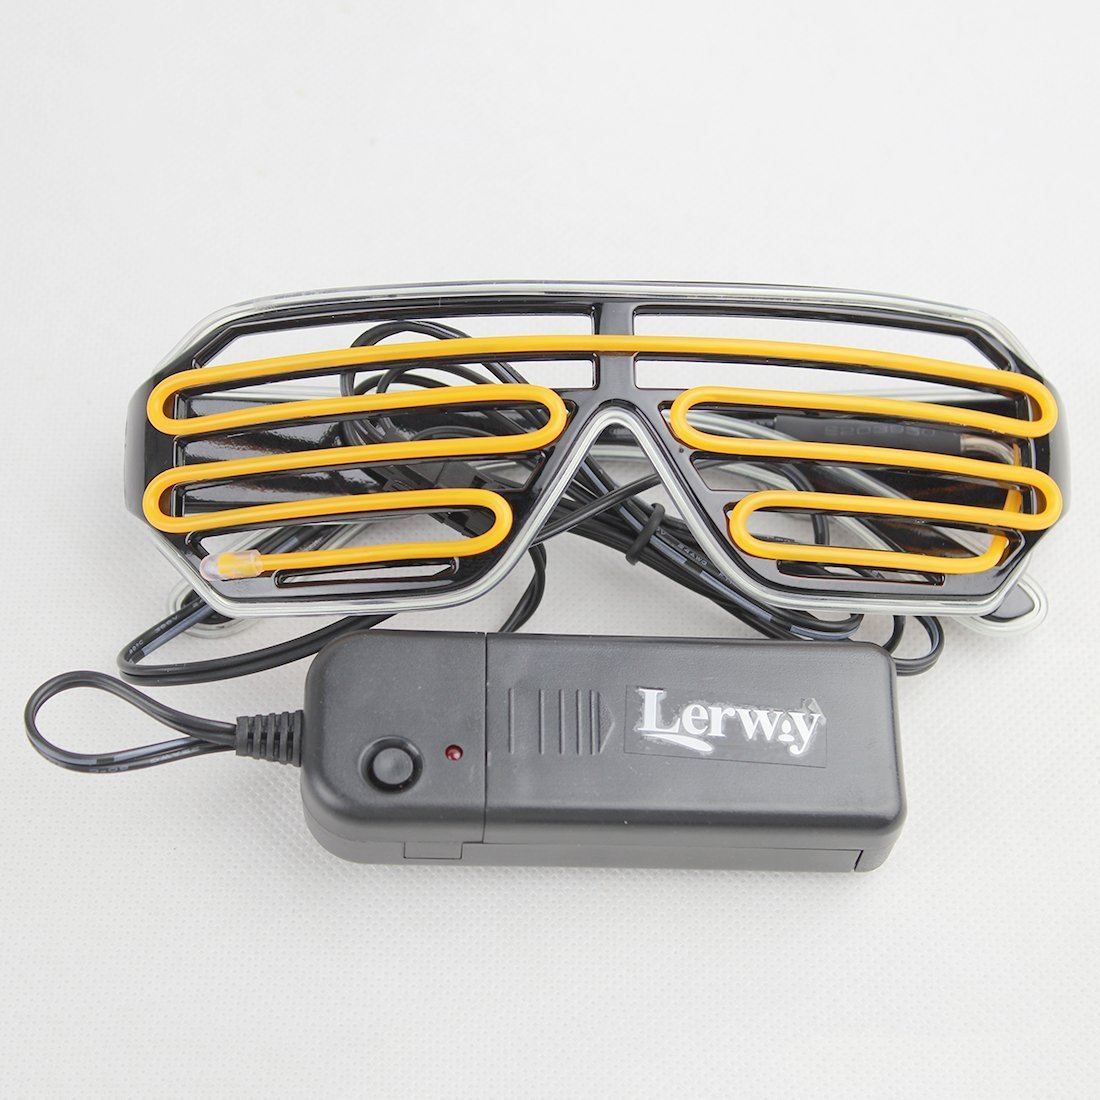 LERWAY Black Frame Neon El Wire LED Lighting Up Slotted Shutter Glasses Eyeglasses Eyewear for Music Concert Live white+red Standard Control Box Stage Performance Show,Crazy Wild Party Bonfire